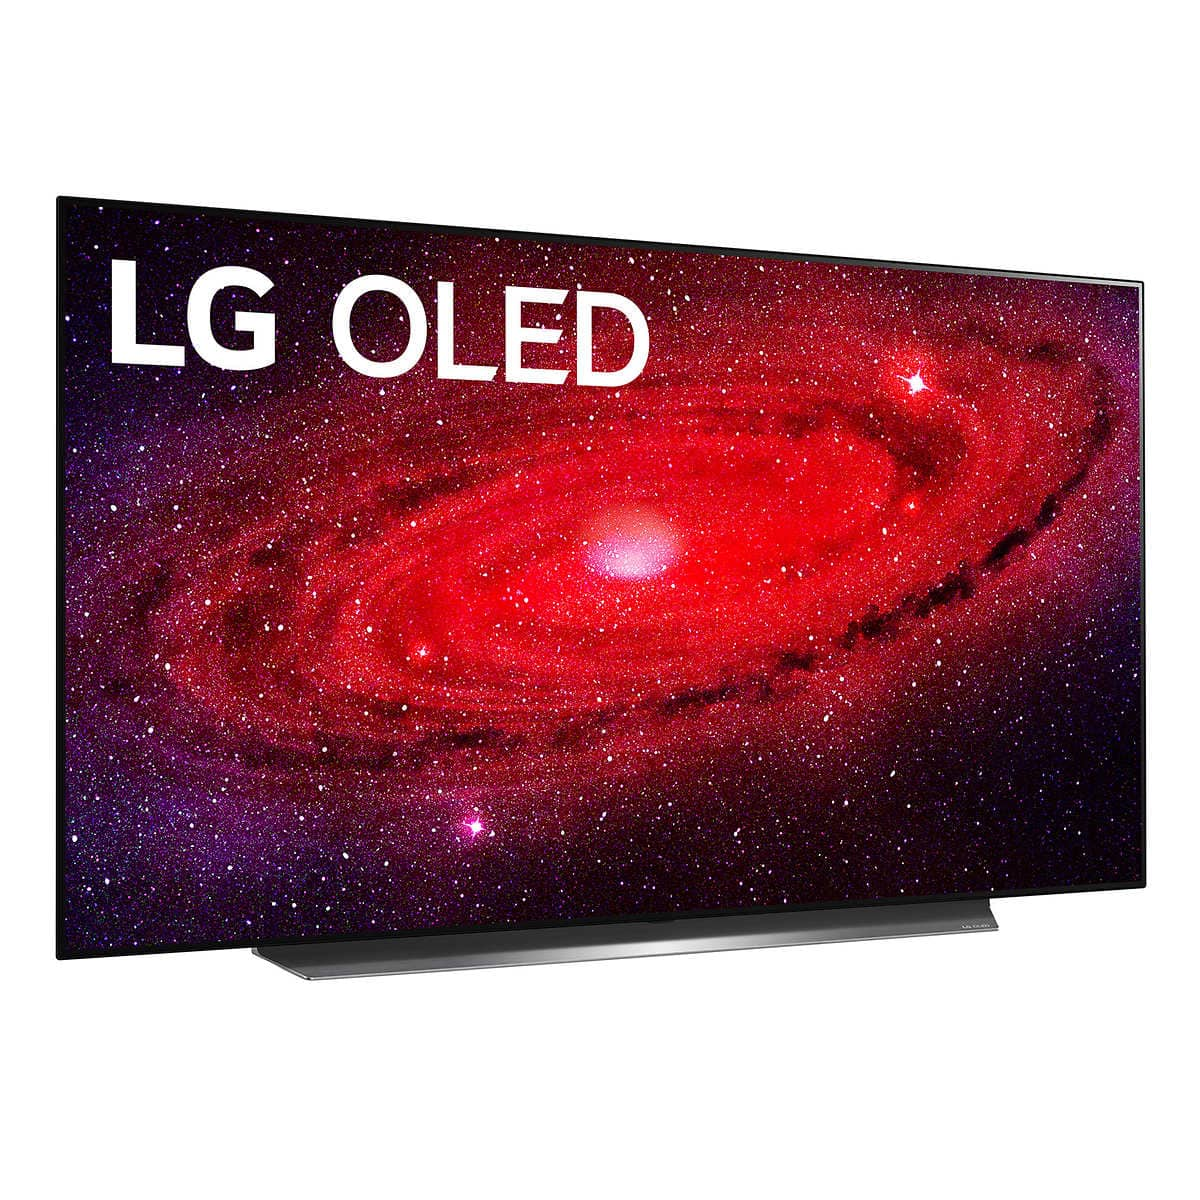 LG OLED 65 CX with 3 year Allstate + 100 Hulu credit for $1849.99 or 1799.99 with code